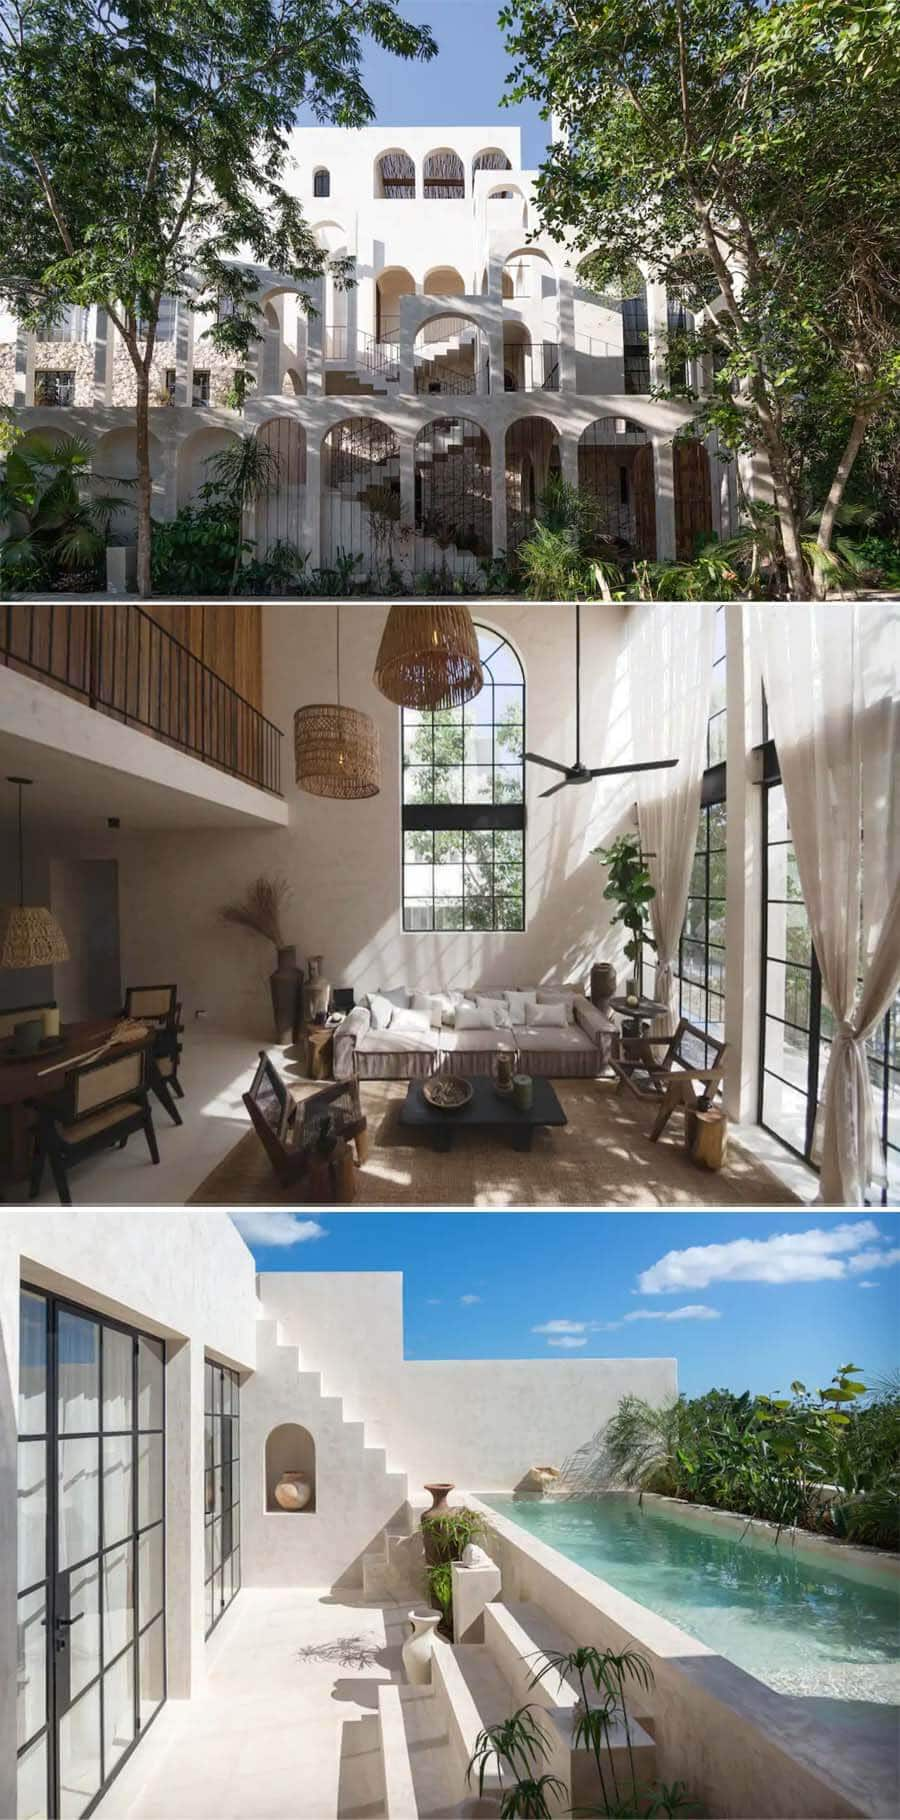 Bohemian penthouse Airbnb in Tulum, Mexico